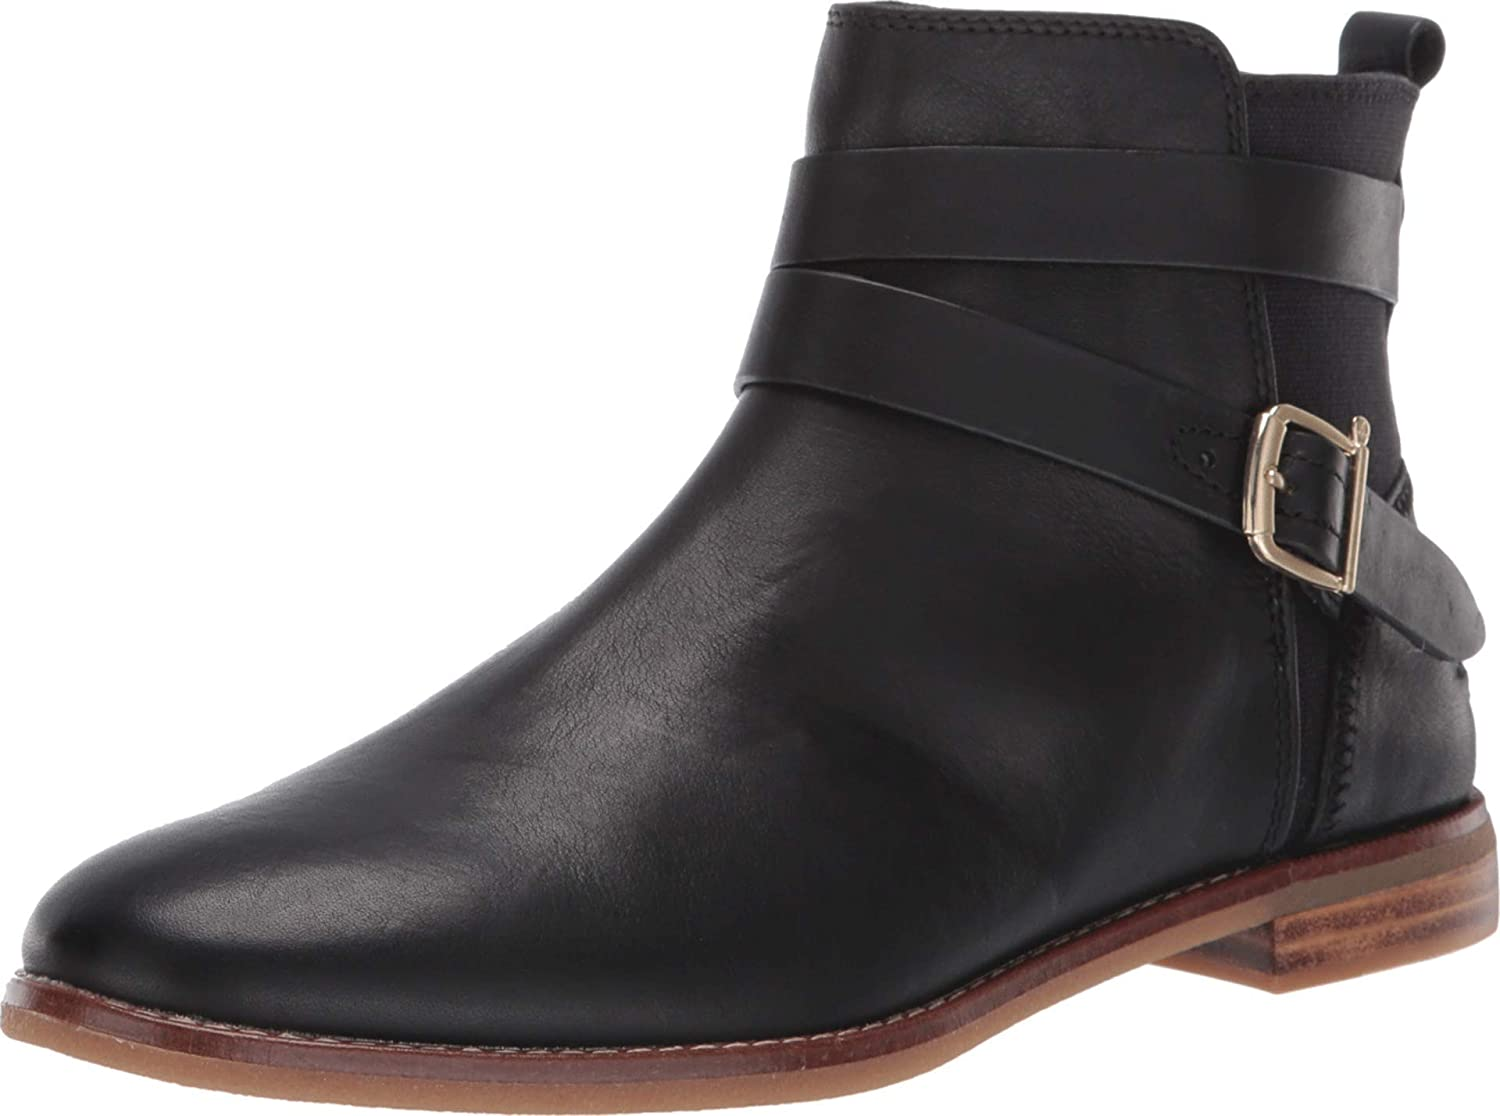 Sperry Women's Ultra-Cheap Deals Seaport Shackle Boots Max 67% OFF Bootie Leather